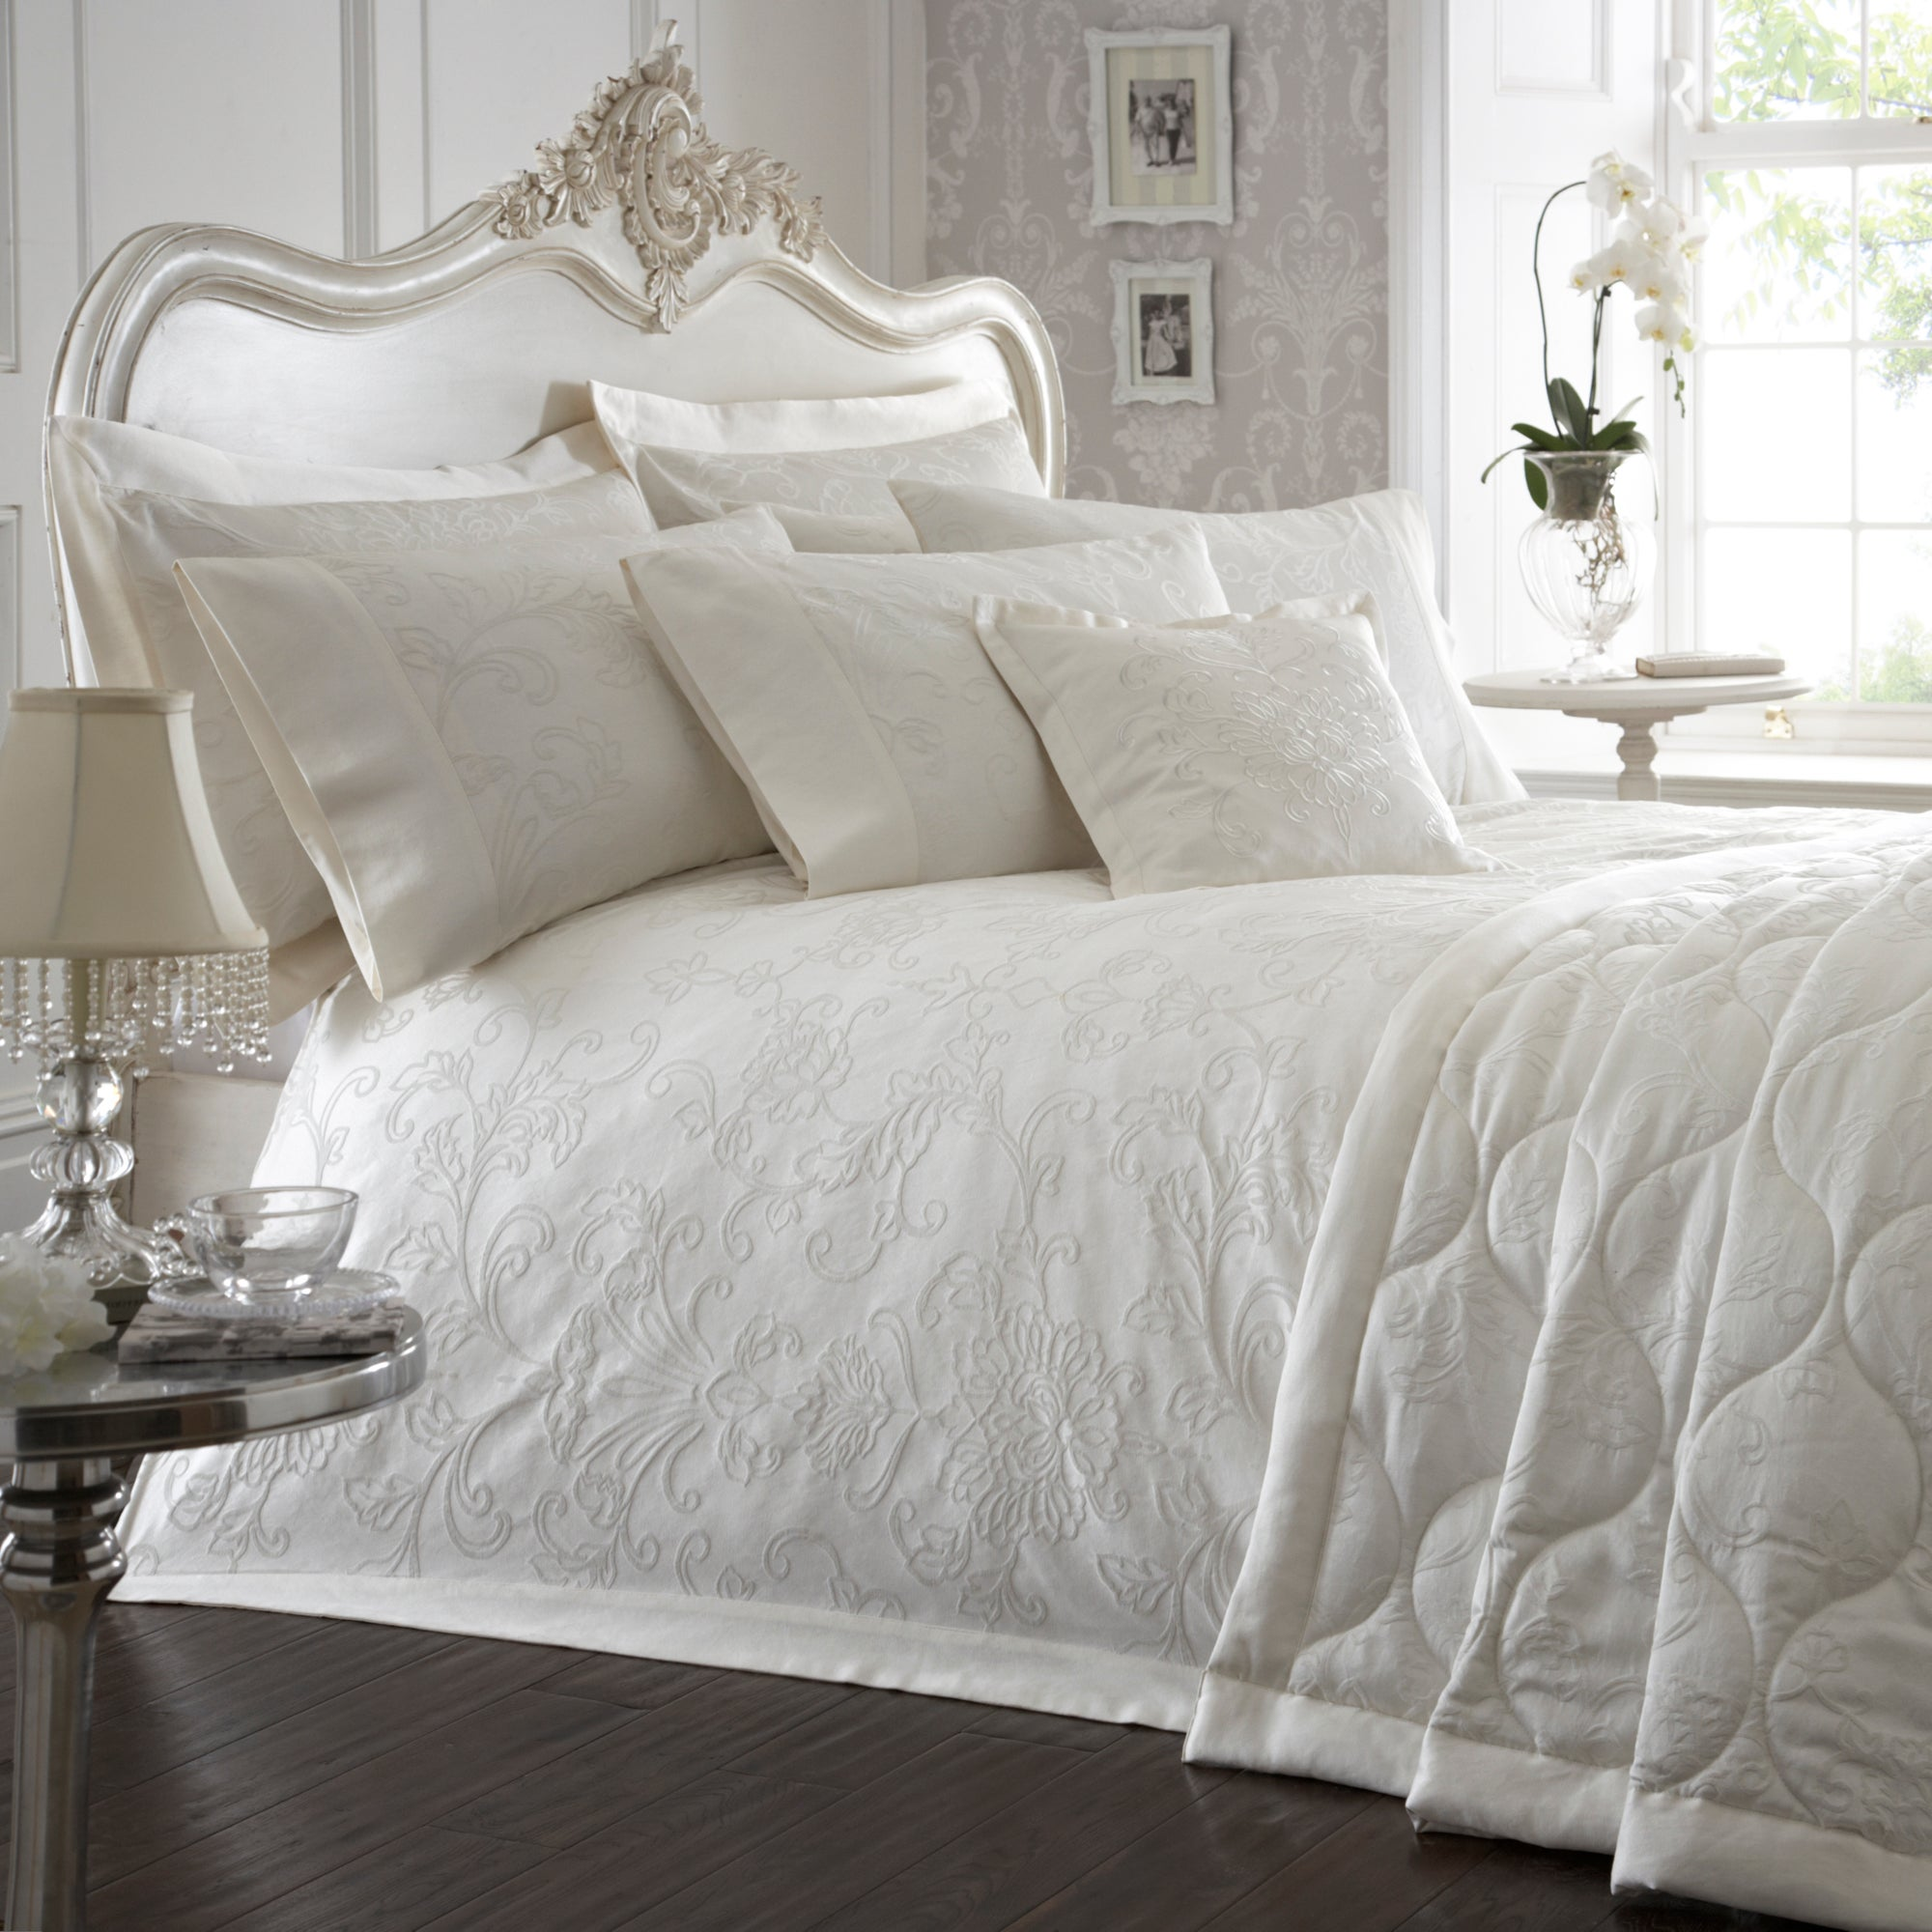 Dorma Cream Pascale Bedlinen Collection